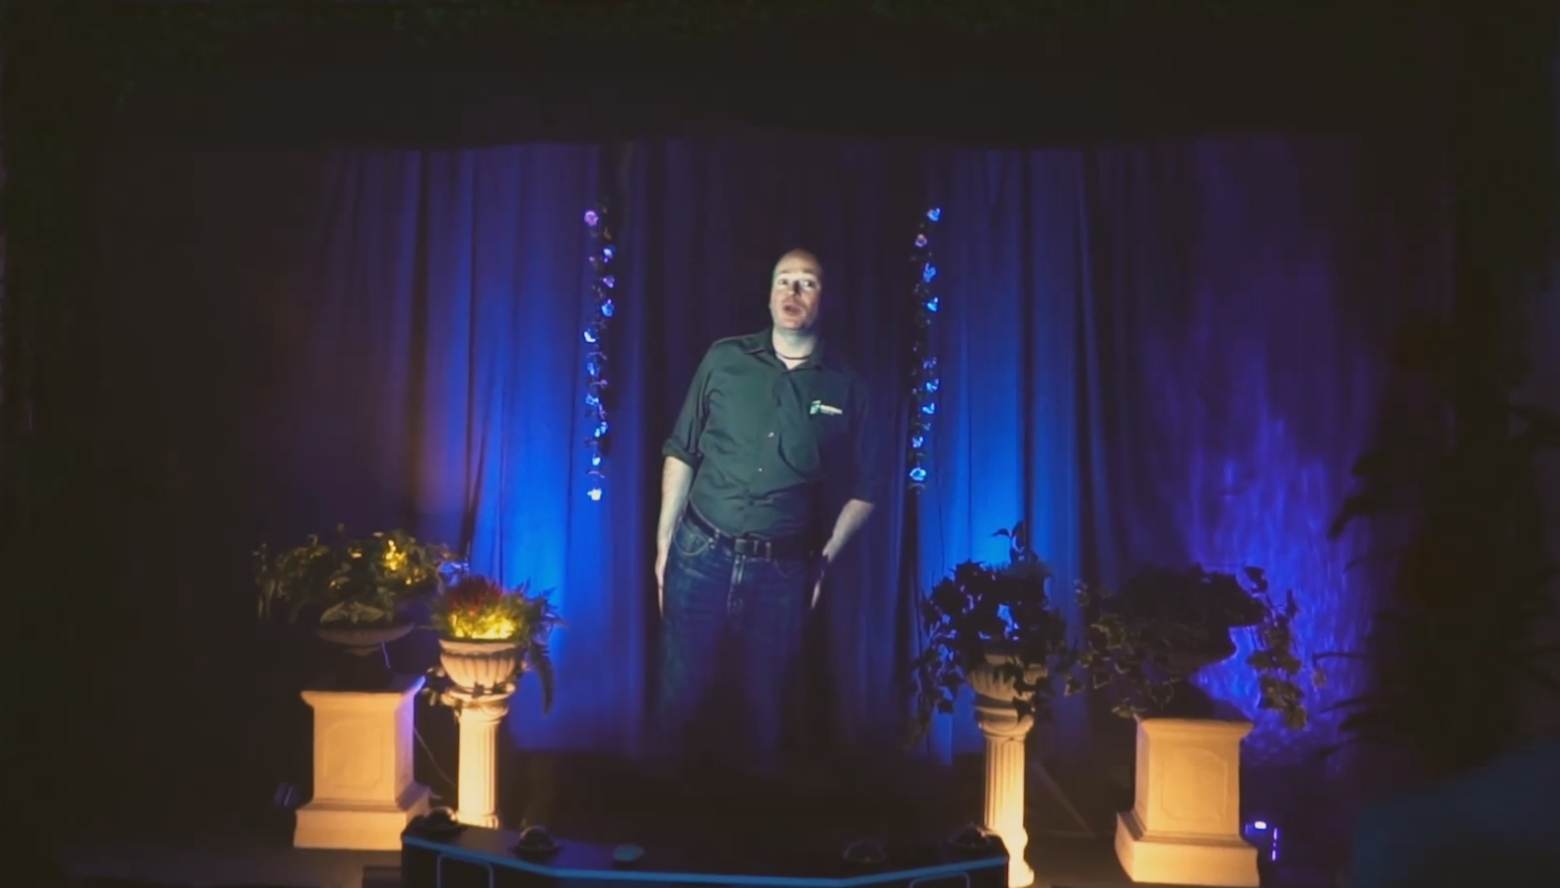 Real people can be holographically recorded for playback for hologram stage or concert entertainment